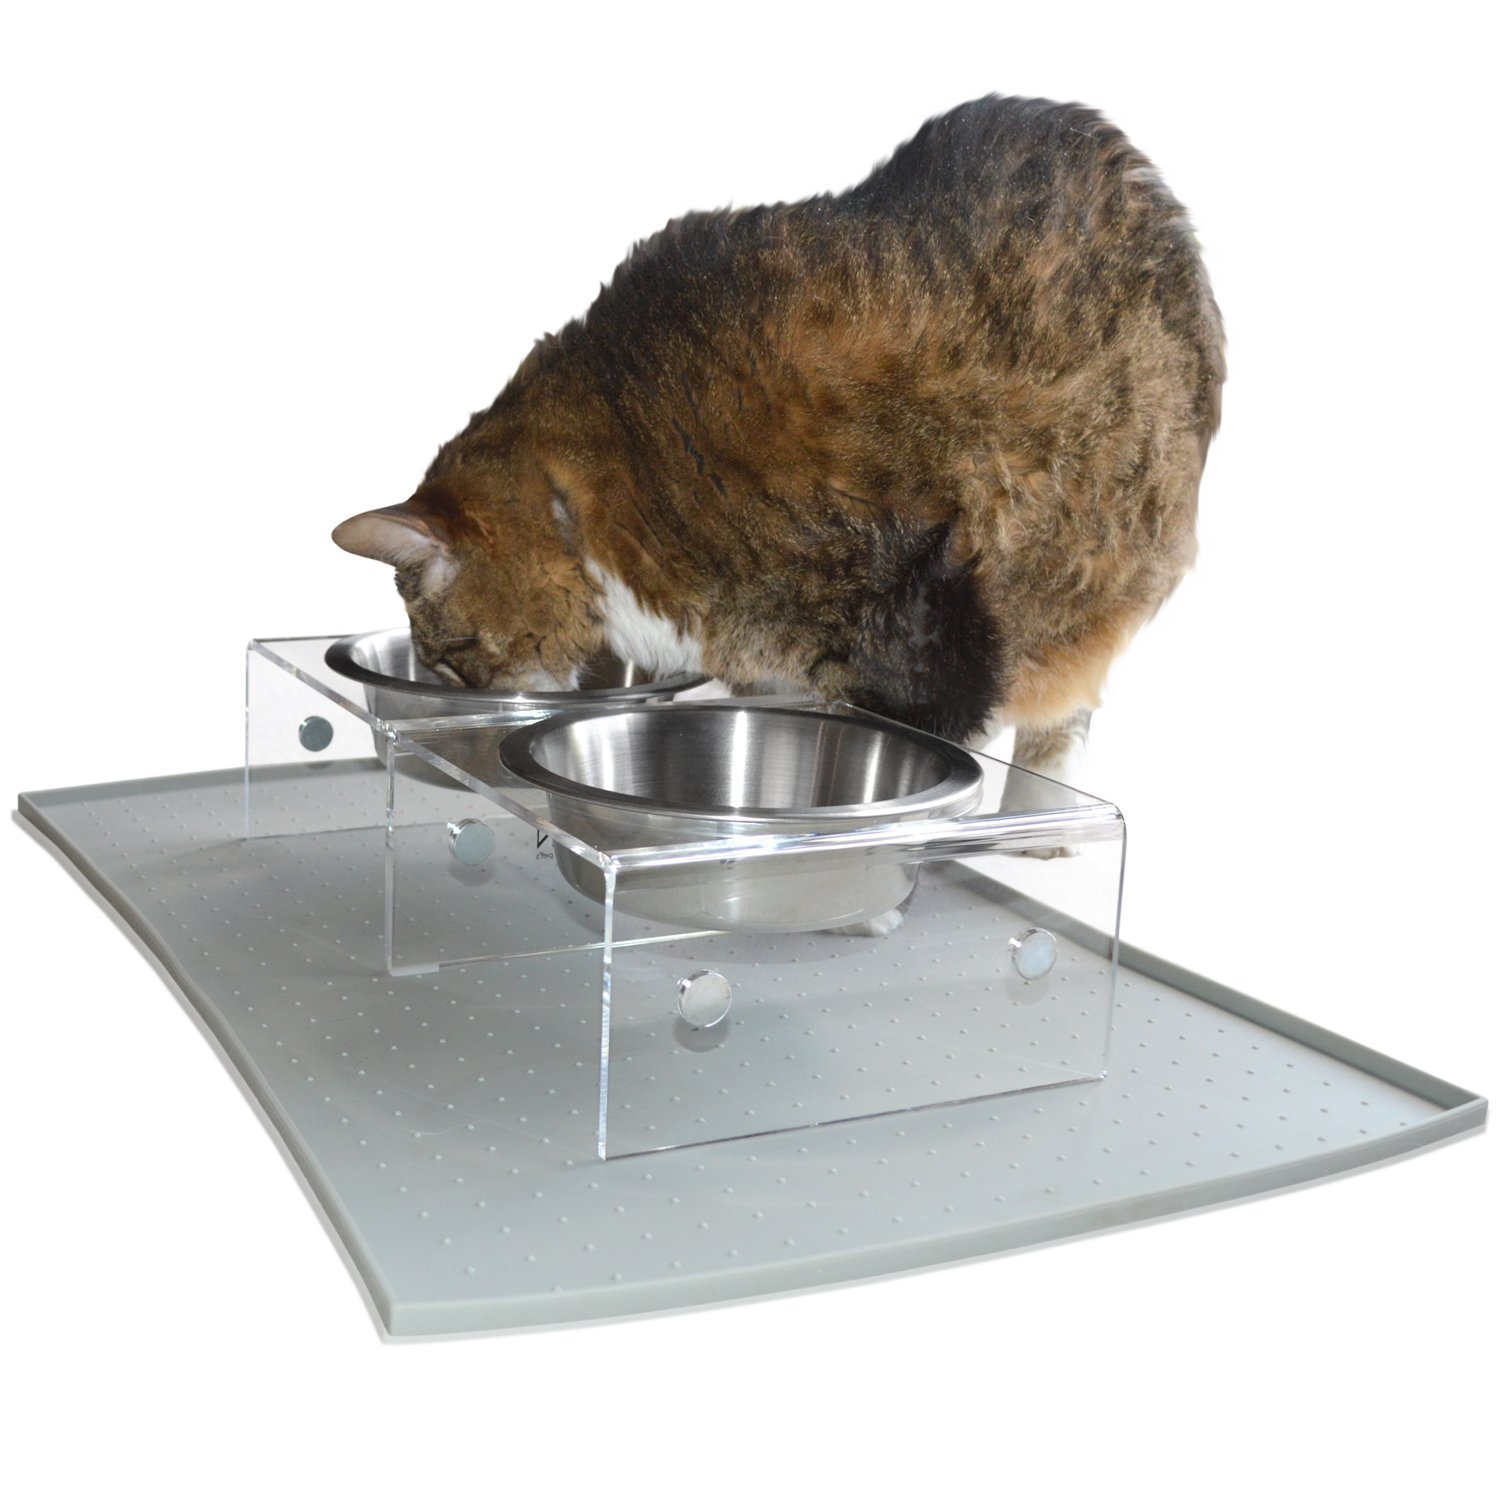 review toy feeder puzzle trixie cat lifestyle img food meow